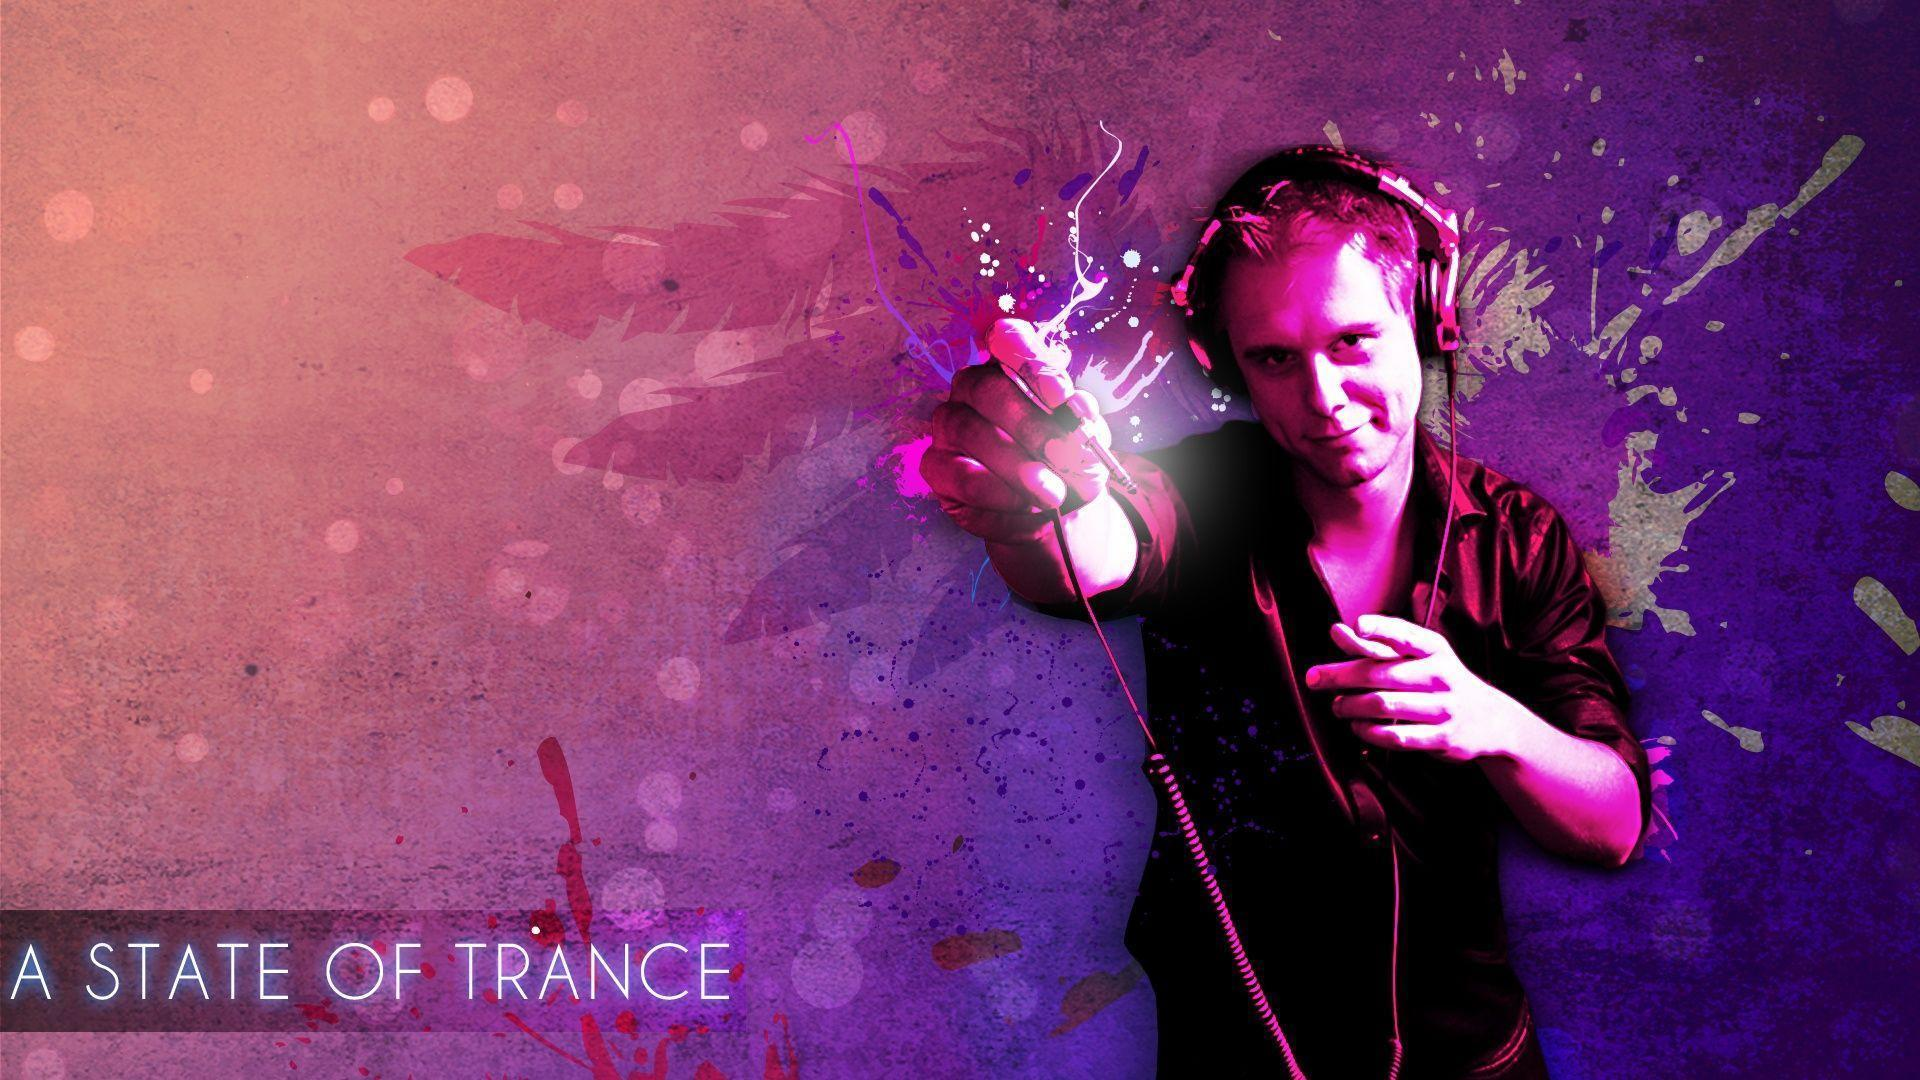 A State Of Trance 2016 Wallpapers 1920x1080